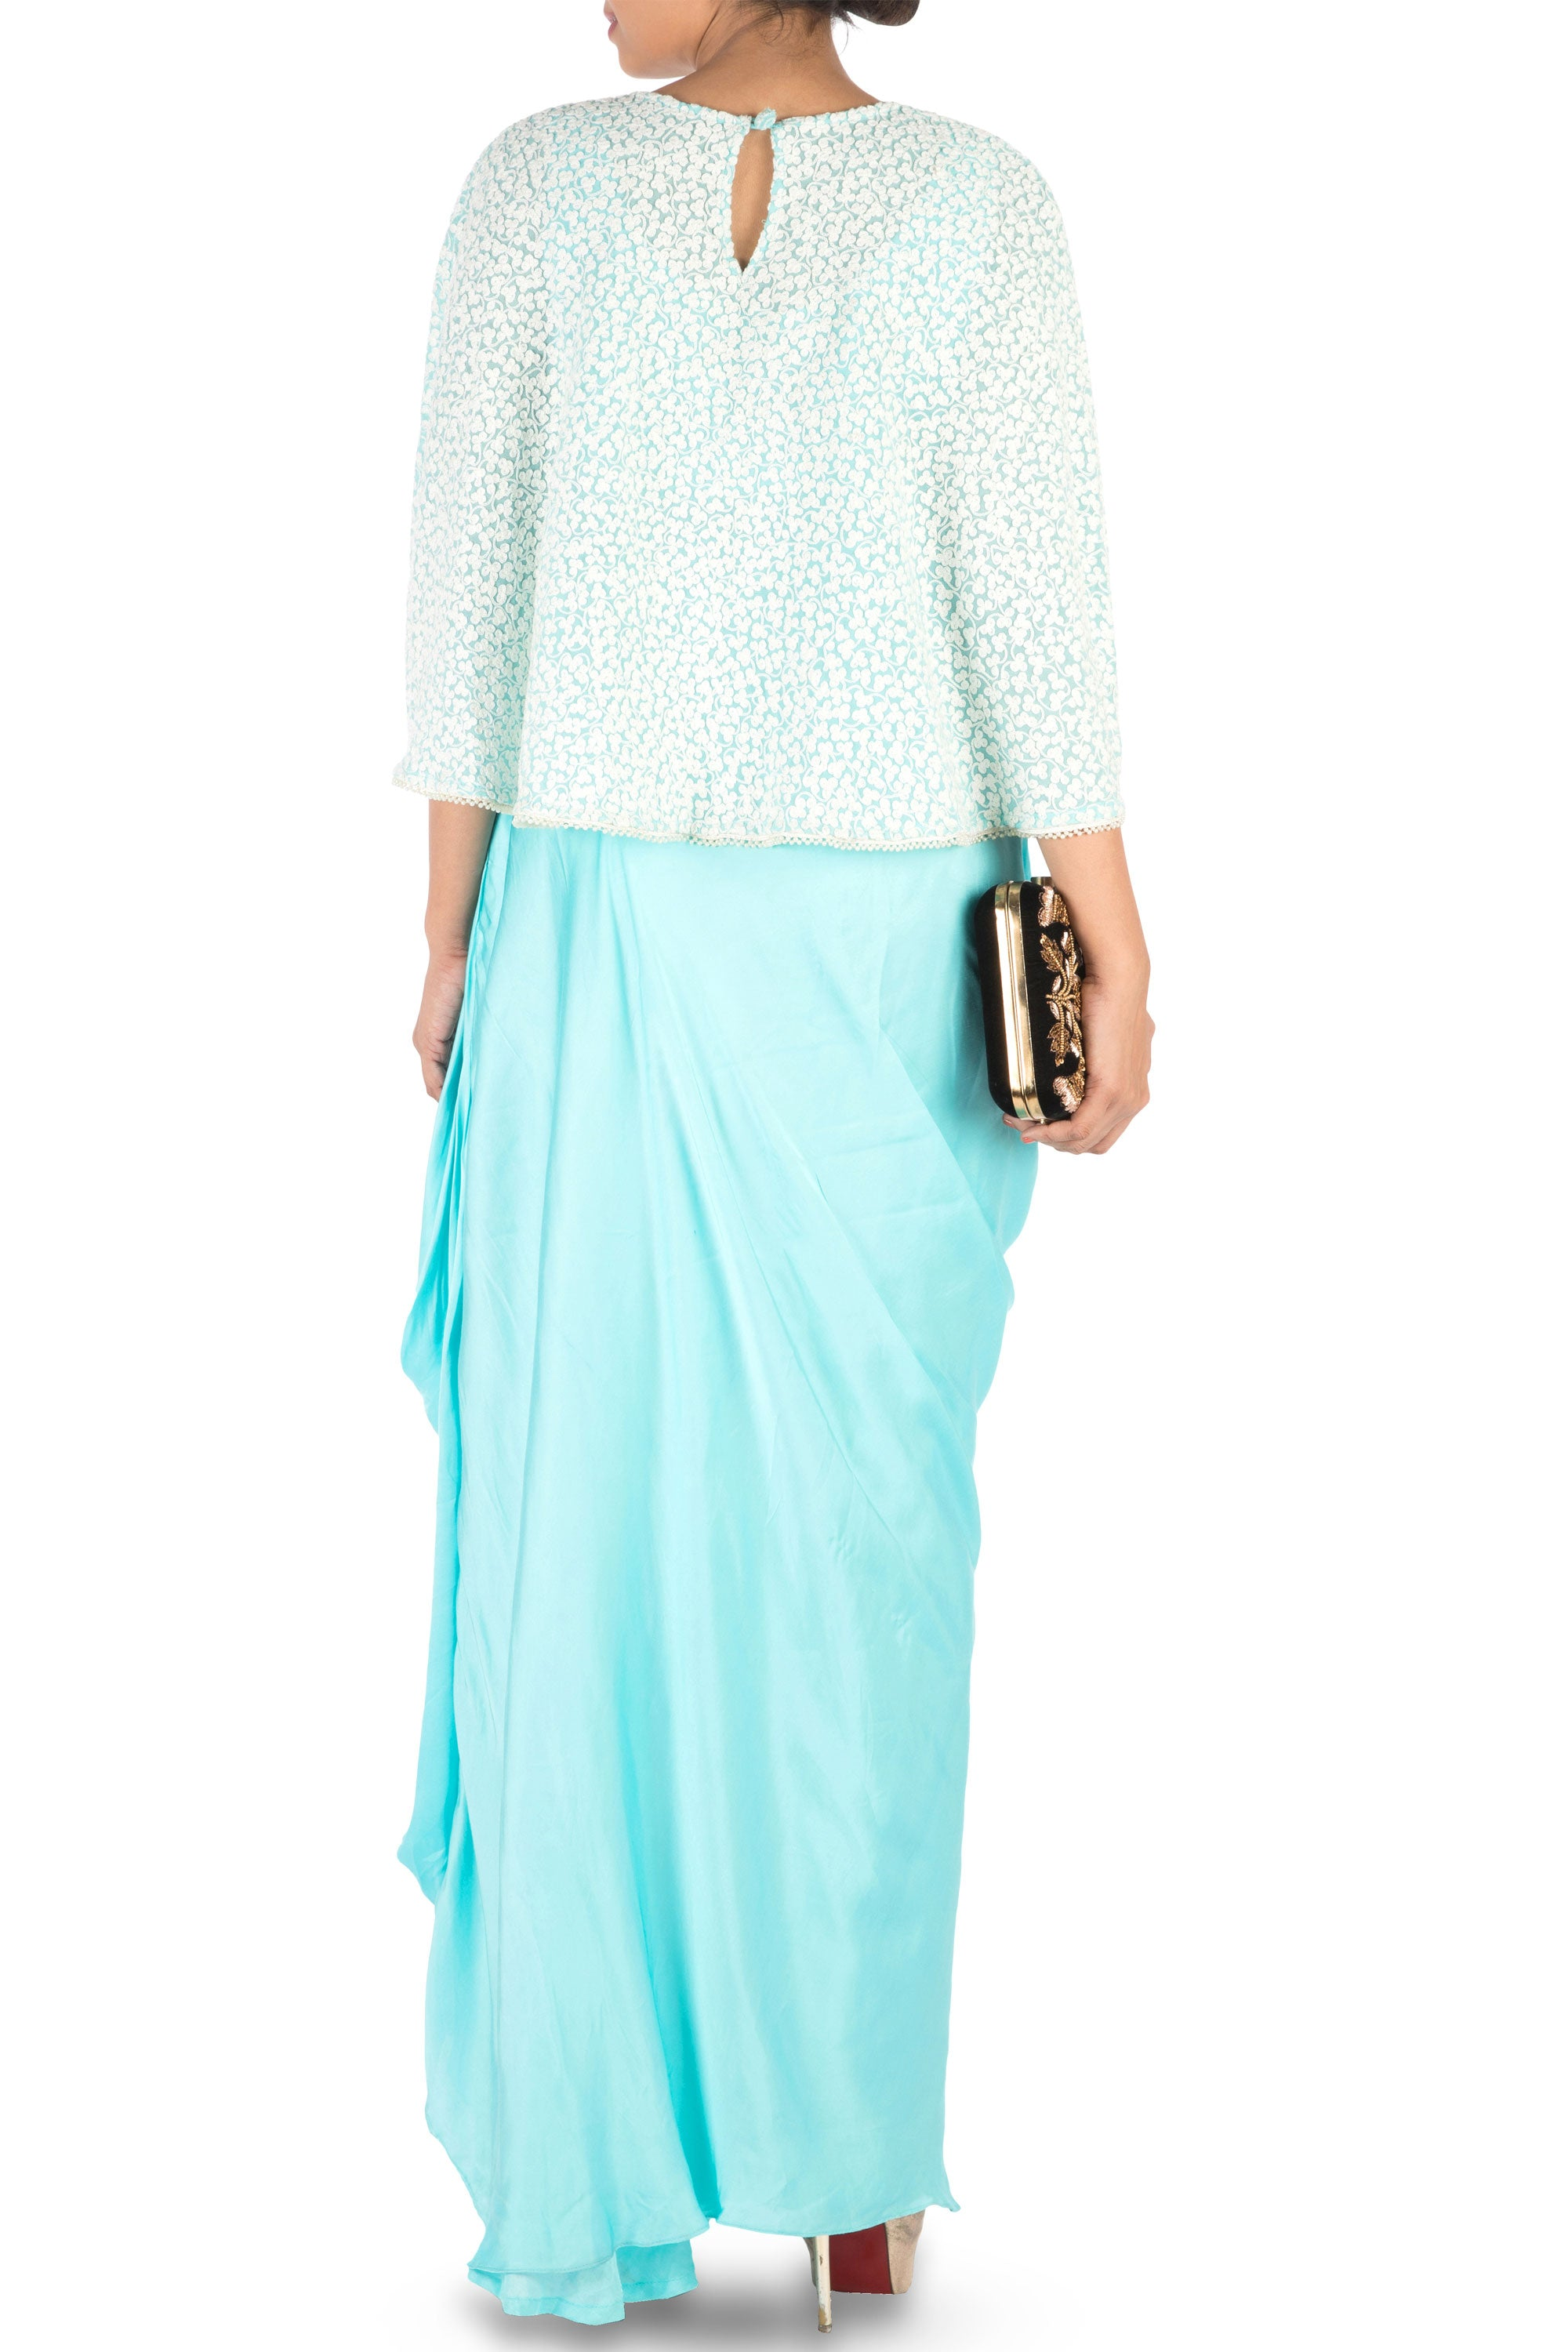 Hand Embroidered Sky Blue Drape Skirt & Cape Set Back